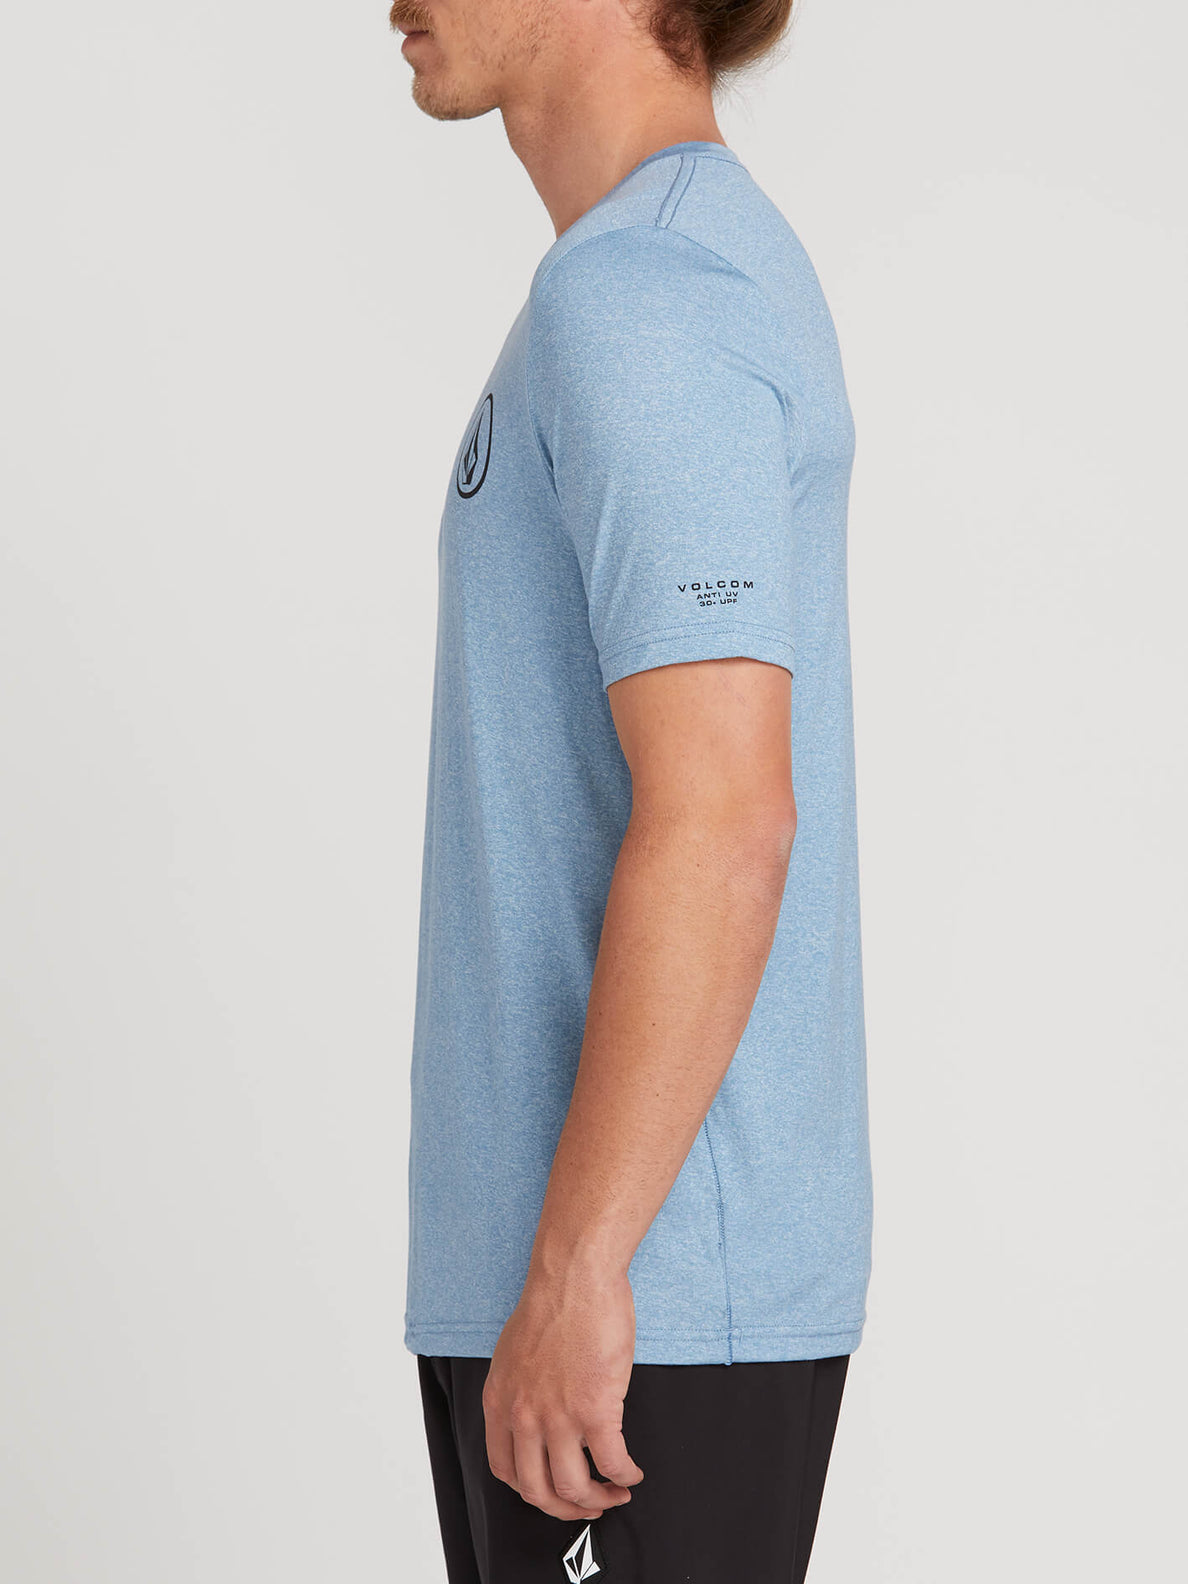 Lido Heather S/s Vbl-Vintage Blue (N0111901_VBL) [1]